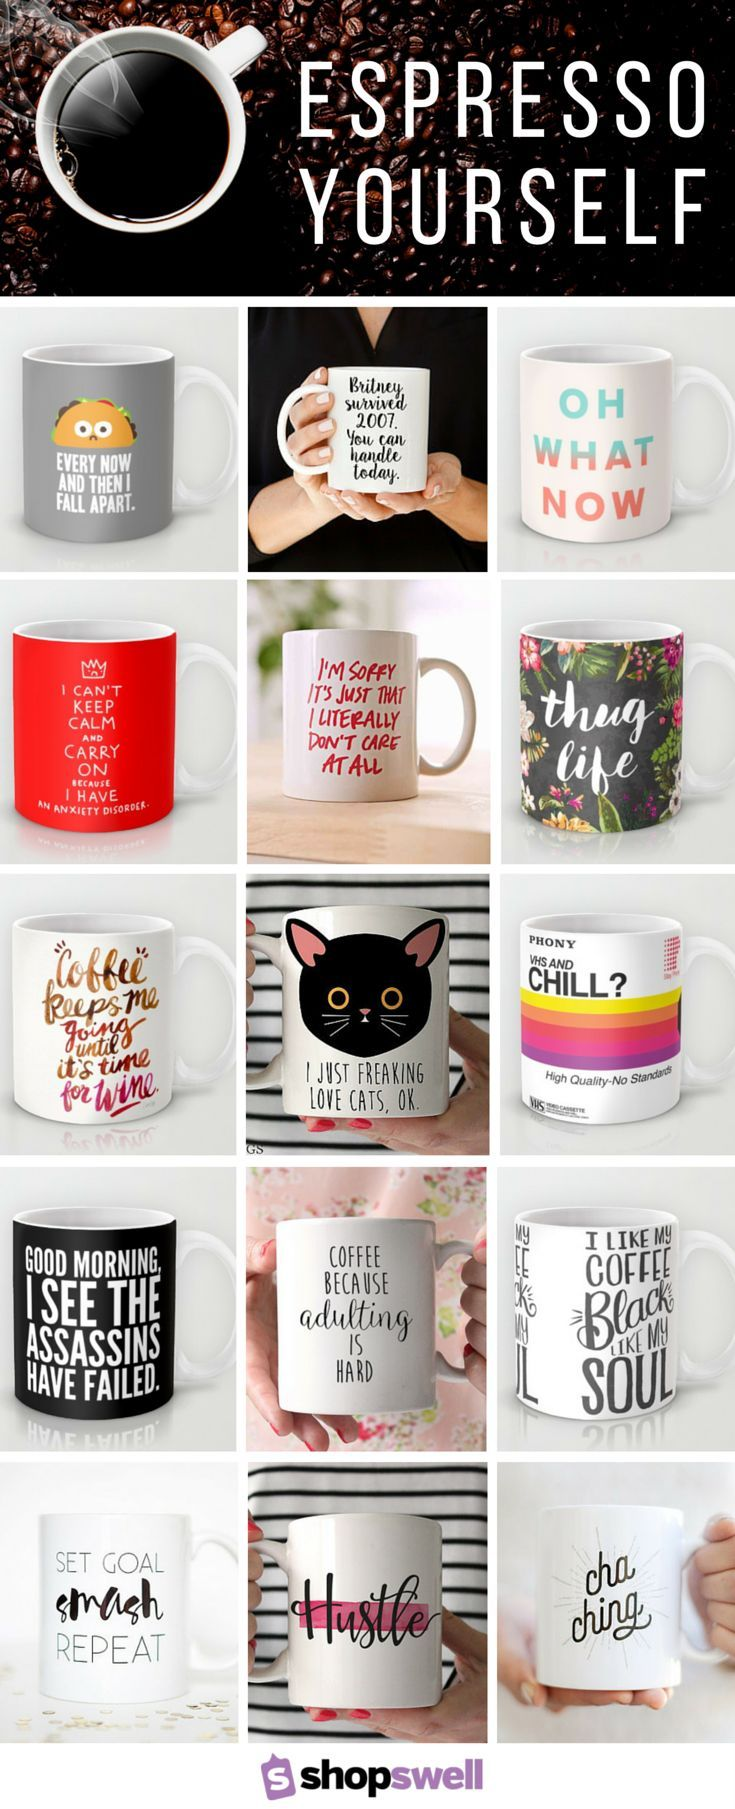 Espresso yourself with one (or three) of these quotable coffee or tea mugs. Click through to take your morning beverage up a notch!